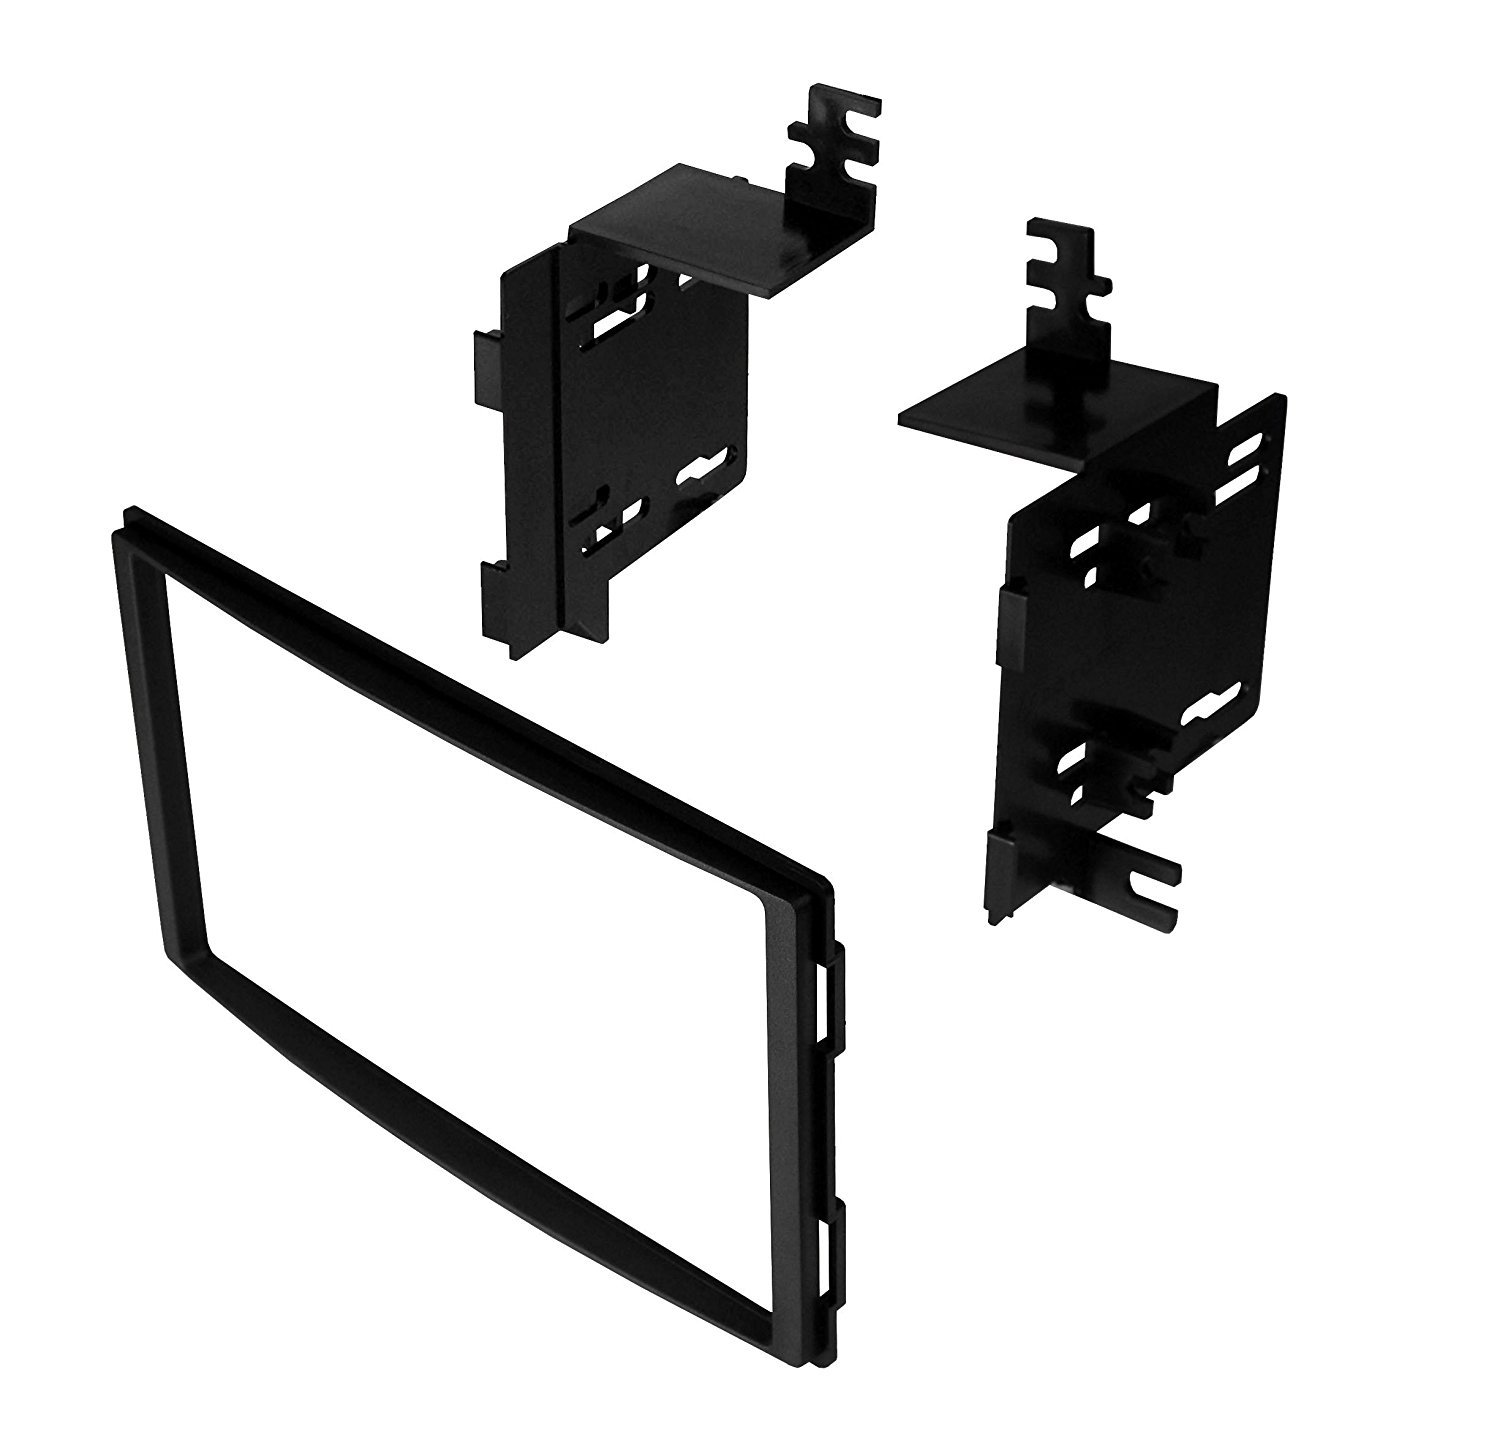 2006 2011 Hyundai Accent Double Din Dash Kit For Stereo Mp3 01 Wiring Diagram Installation Car Electronics